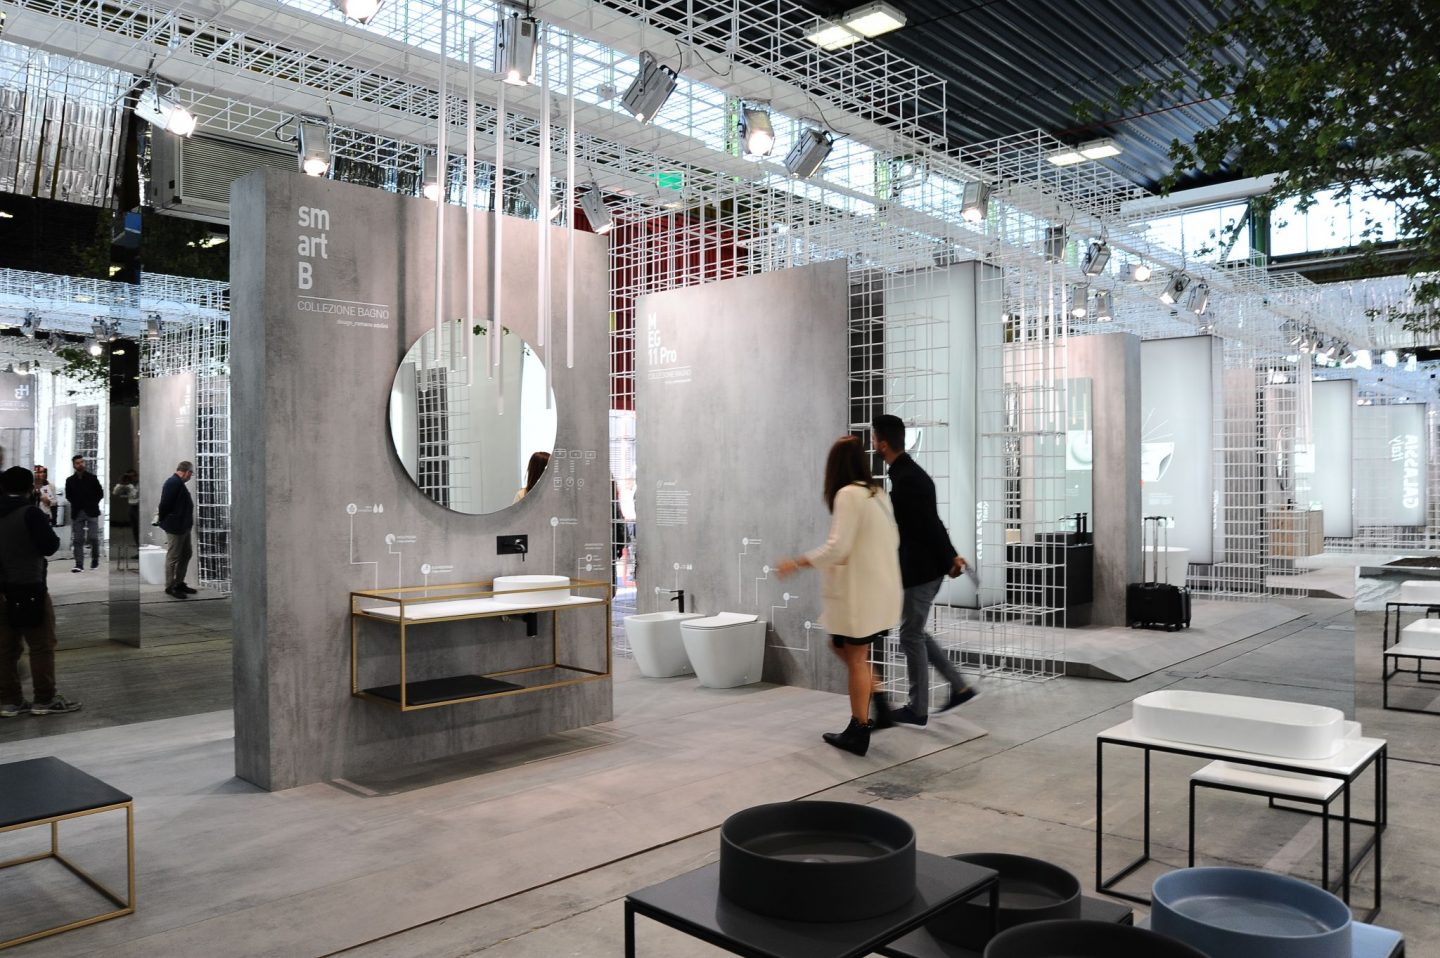 Cersaie the International Exhibition of Ceramic Tile, Bologna Design Week, Cersaie, Tiles, hellopeagreen, Italian Design, interiors blogger, bathroom trend, hello peagreen